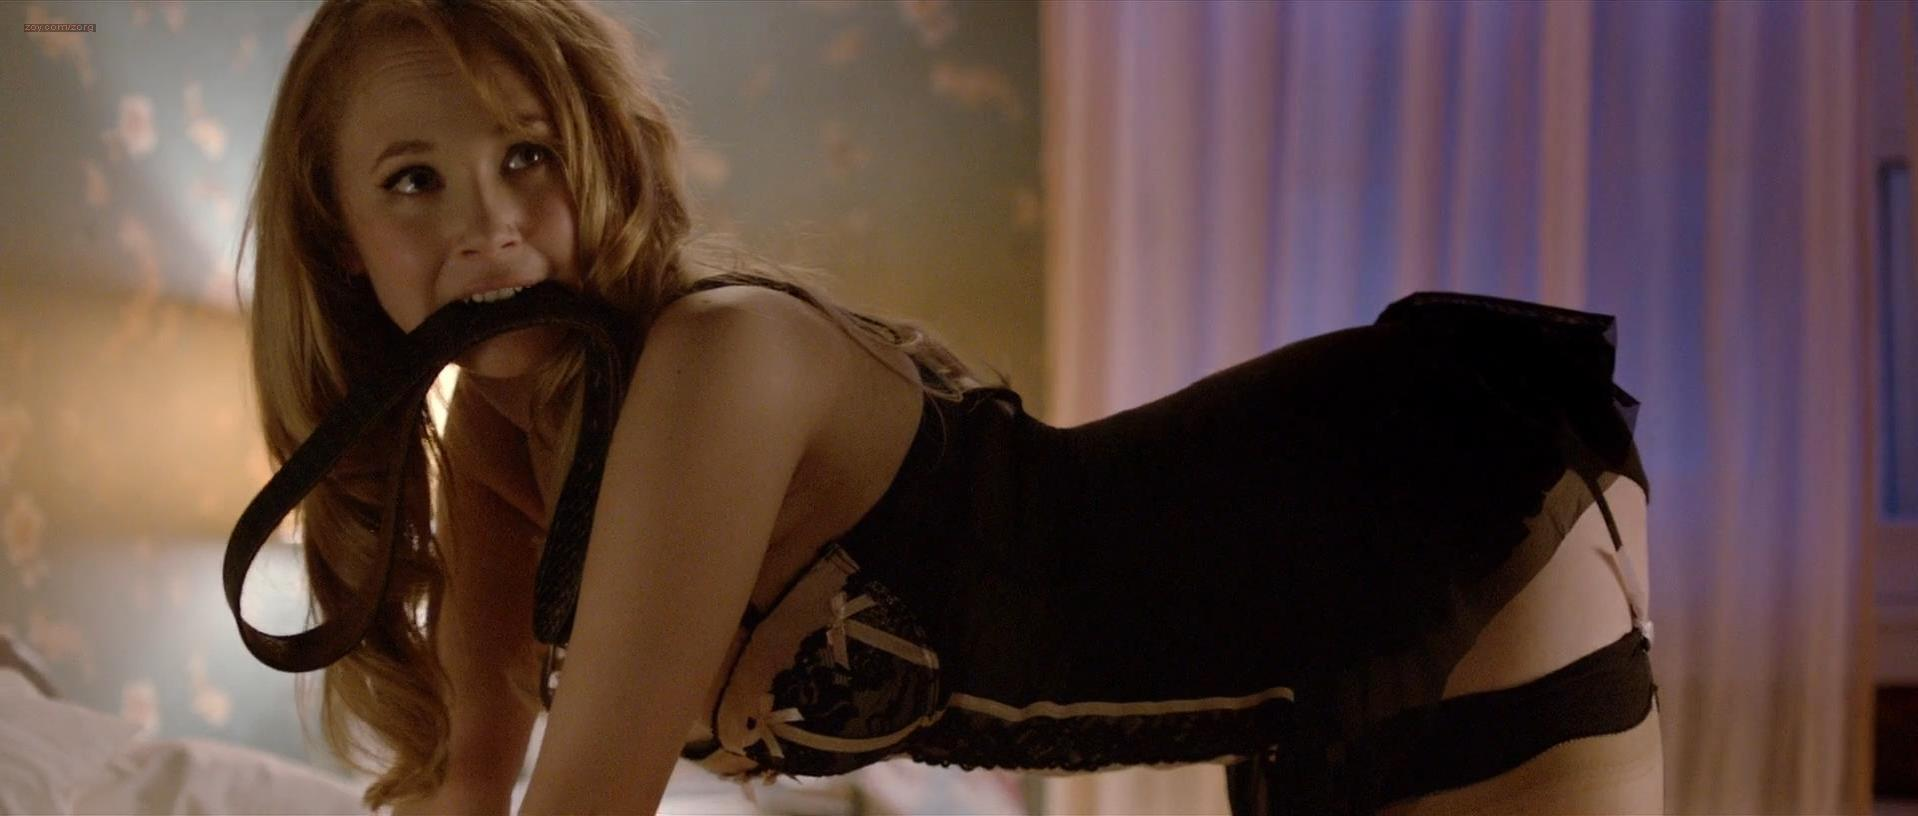 Juno Temple sexy - The Brass Teapot (2012)